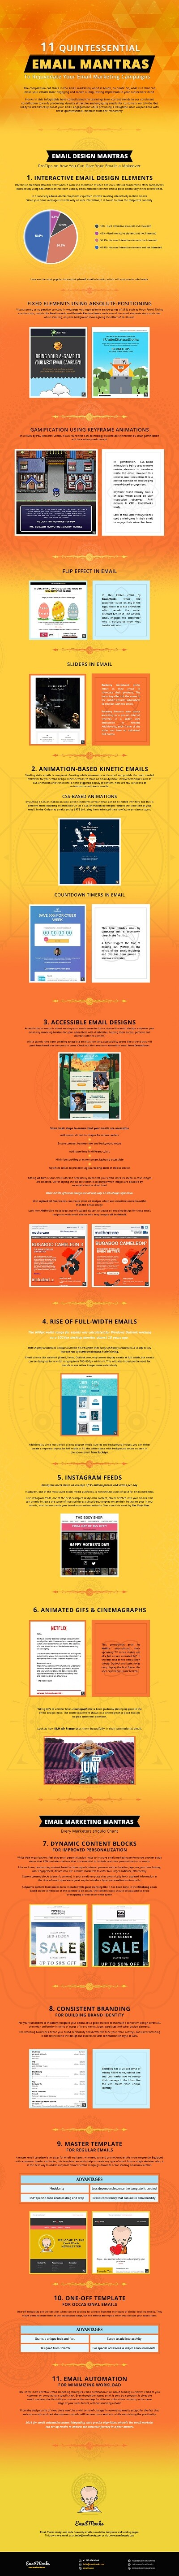 Email marketing and Design Mantras